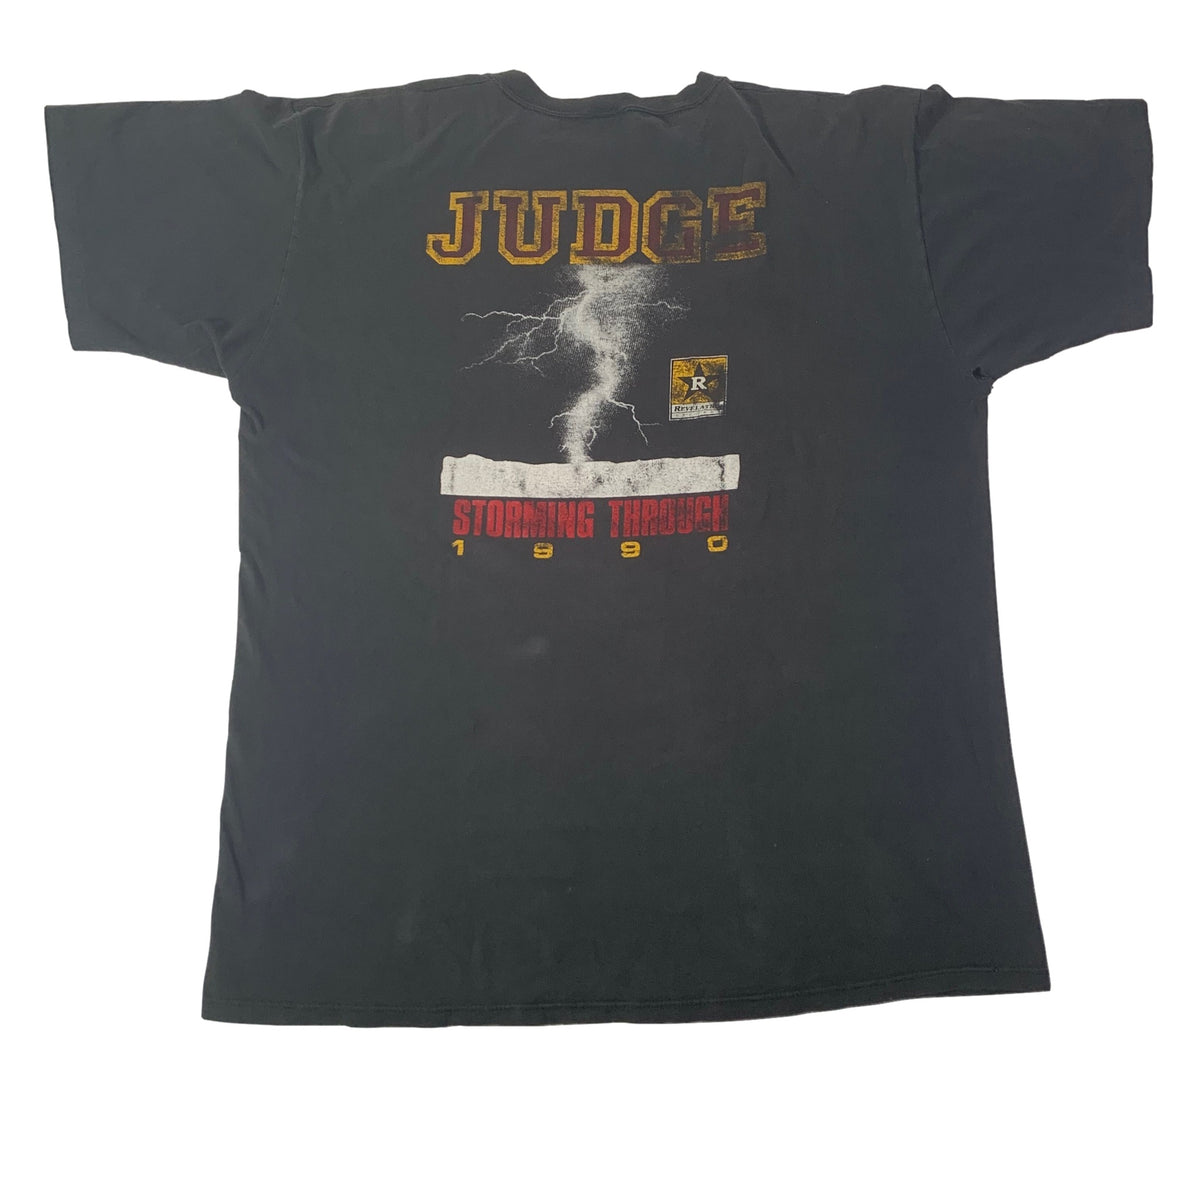 "Vintage Judge ""Storming Through"" T-Shirt"